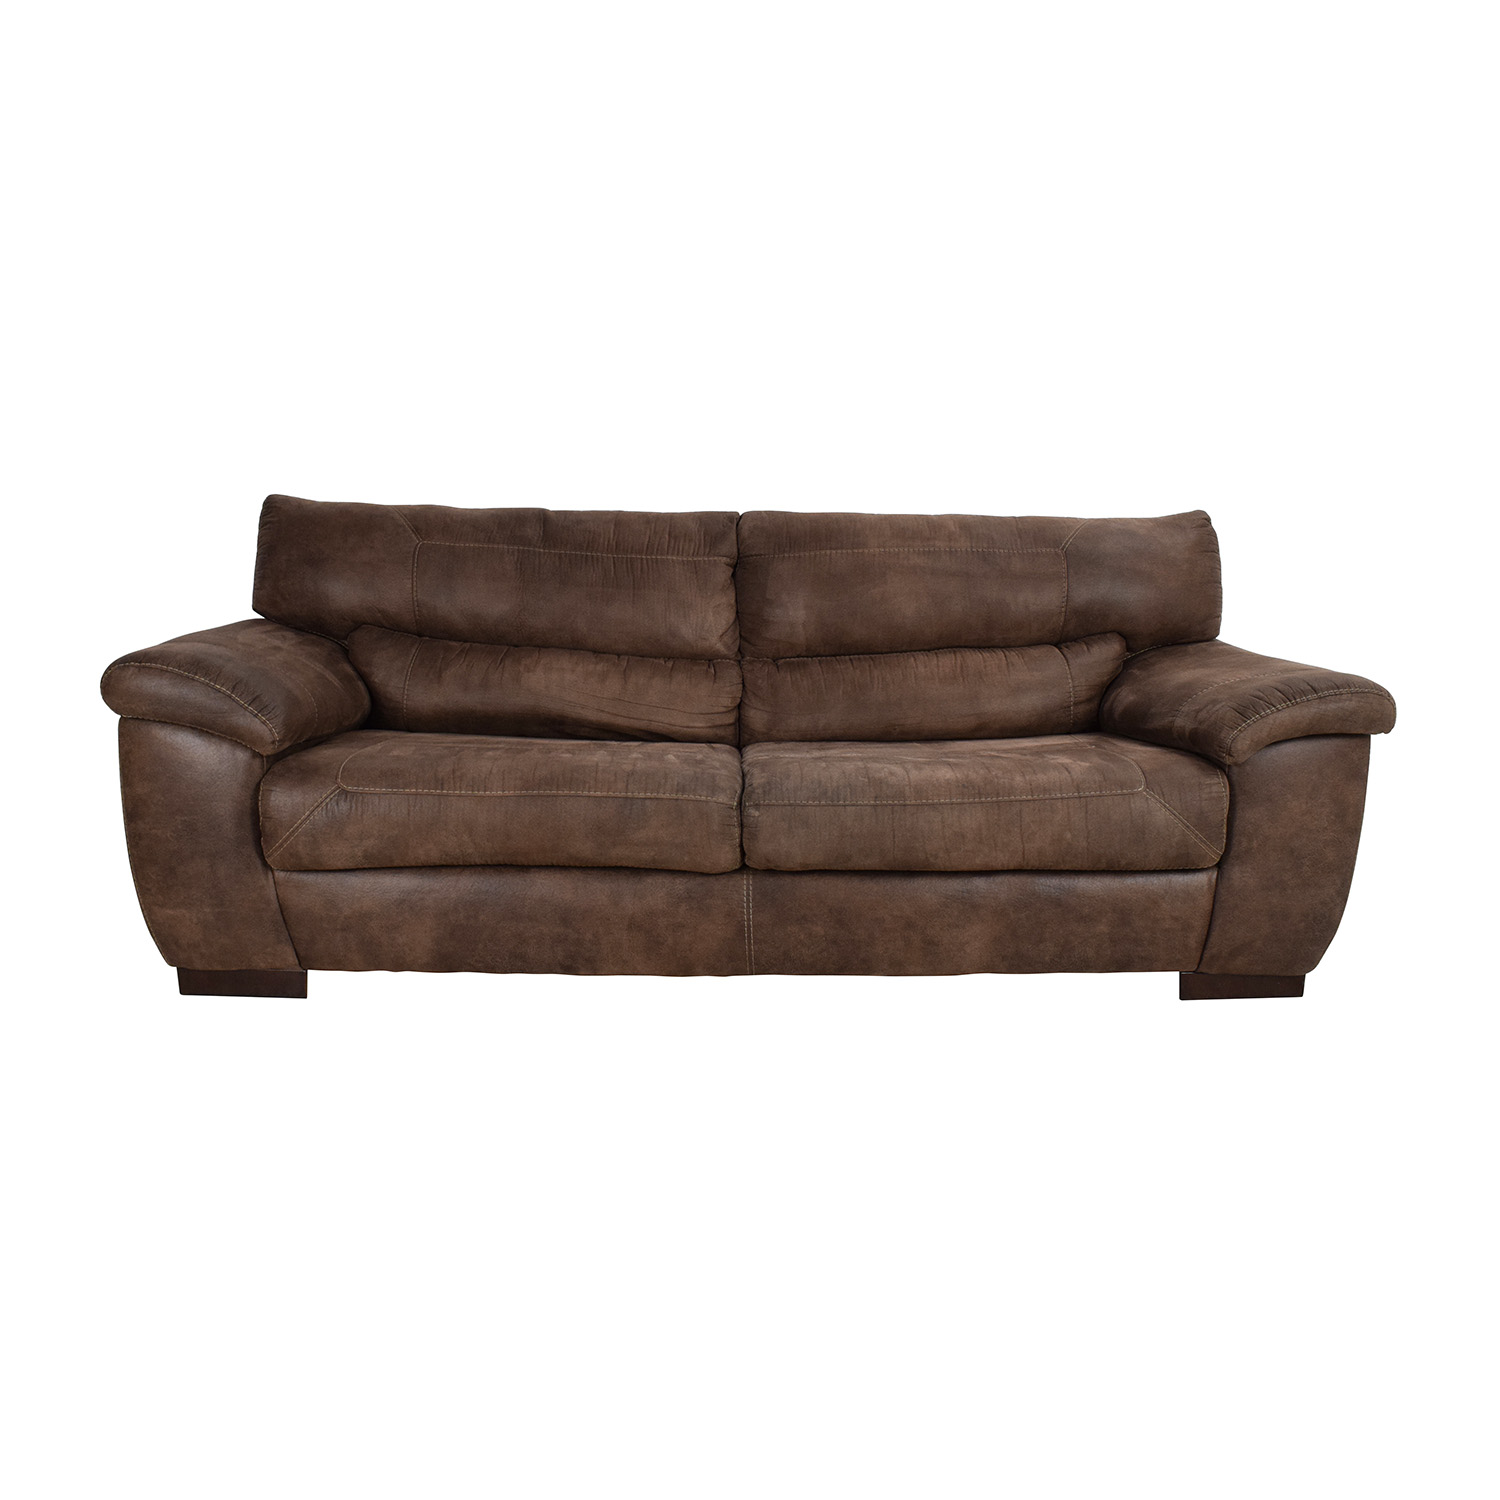 Jennifer Convertibles Jennifer Convertibles Brown Sofa on sale